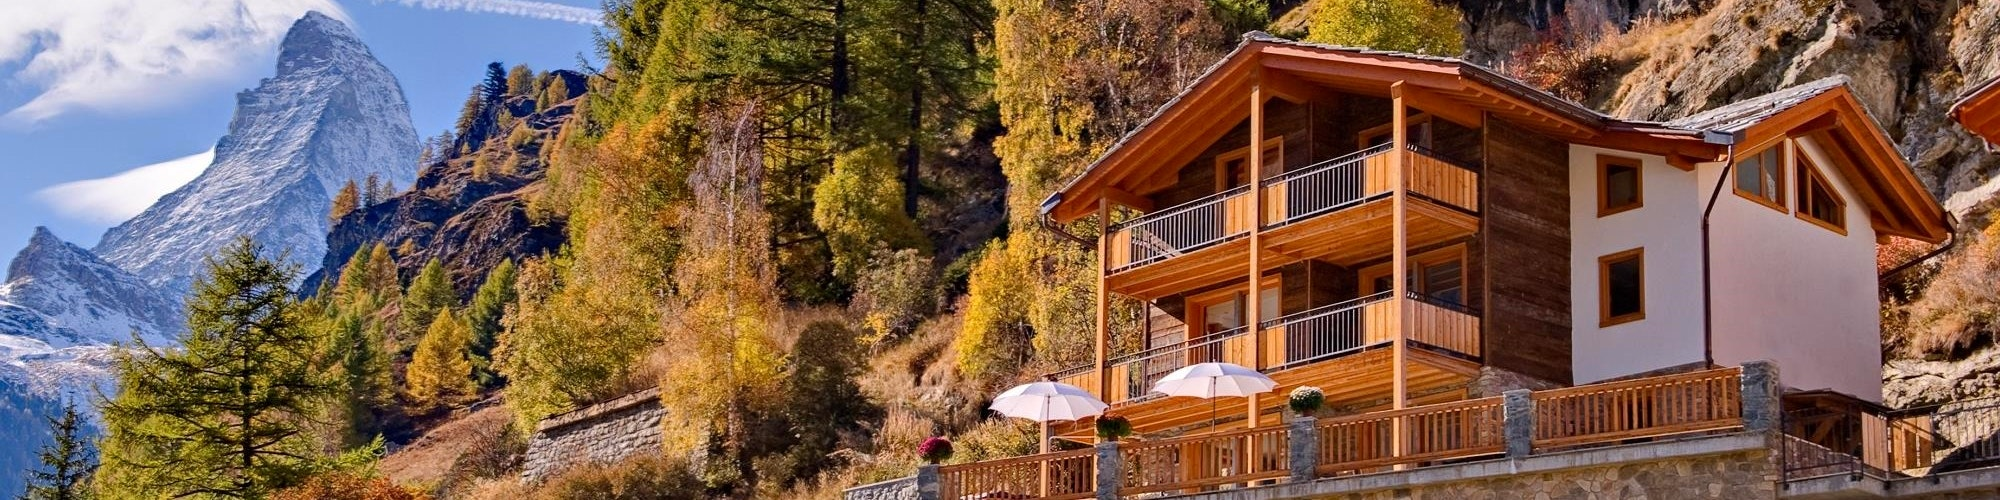 Holiday apartments in Zermatt